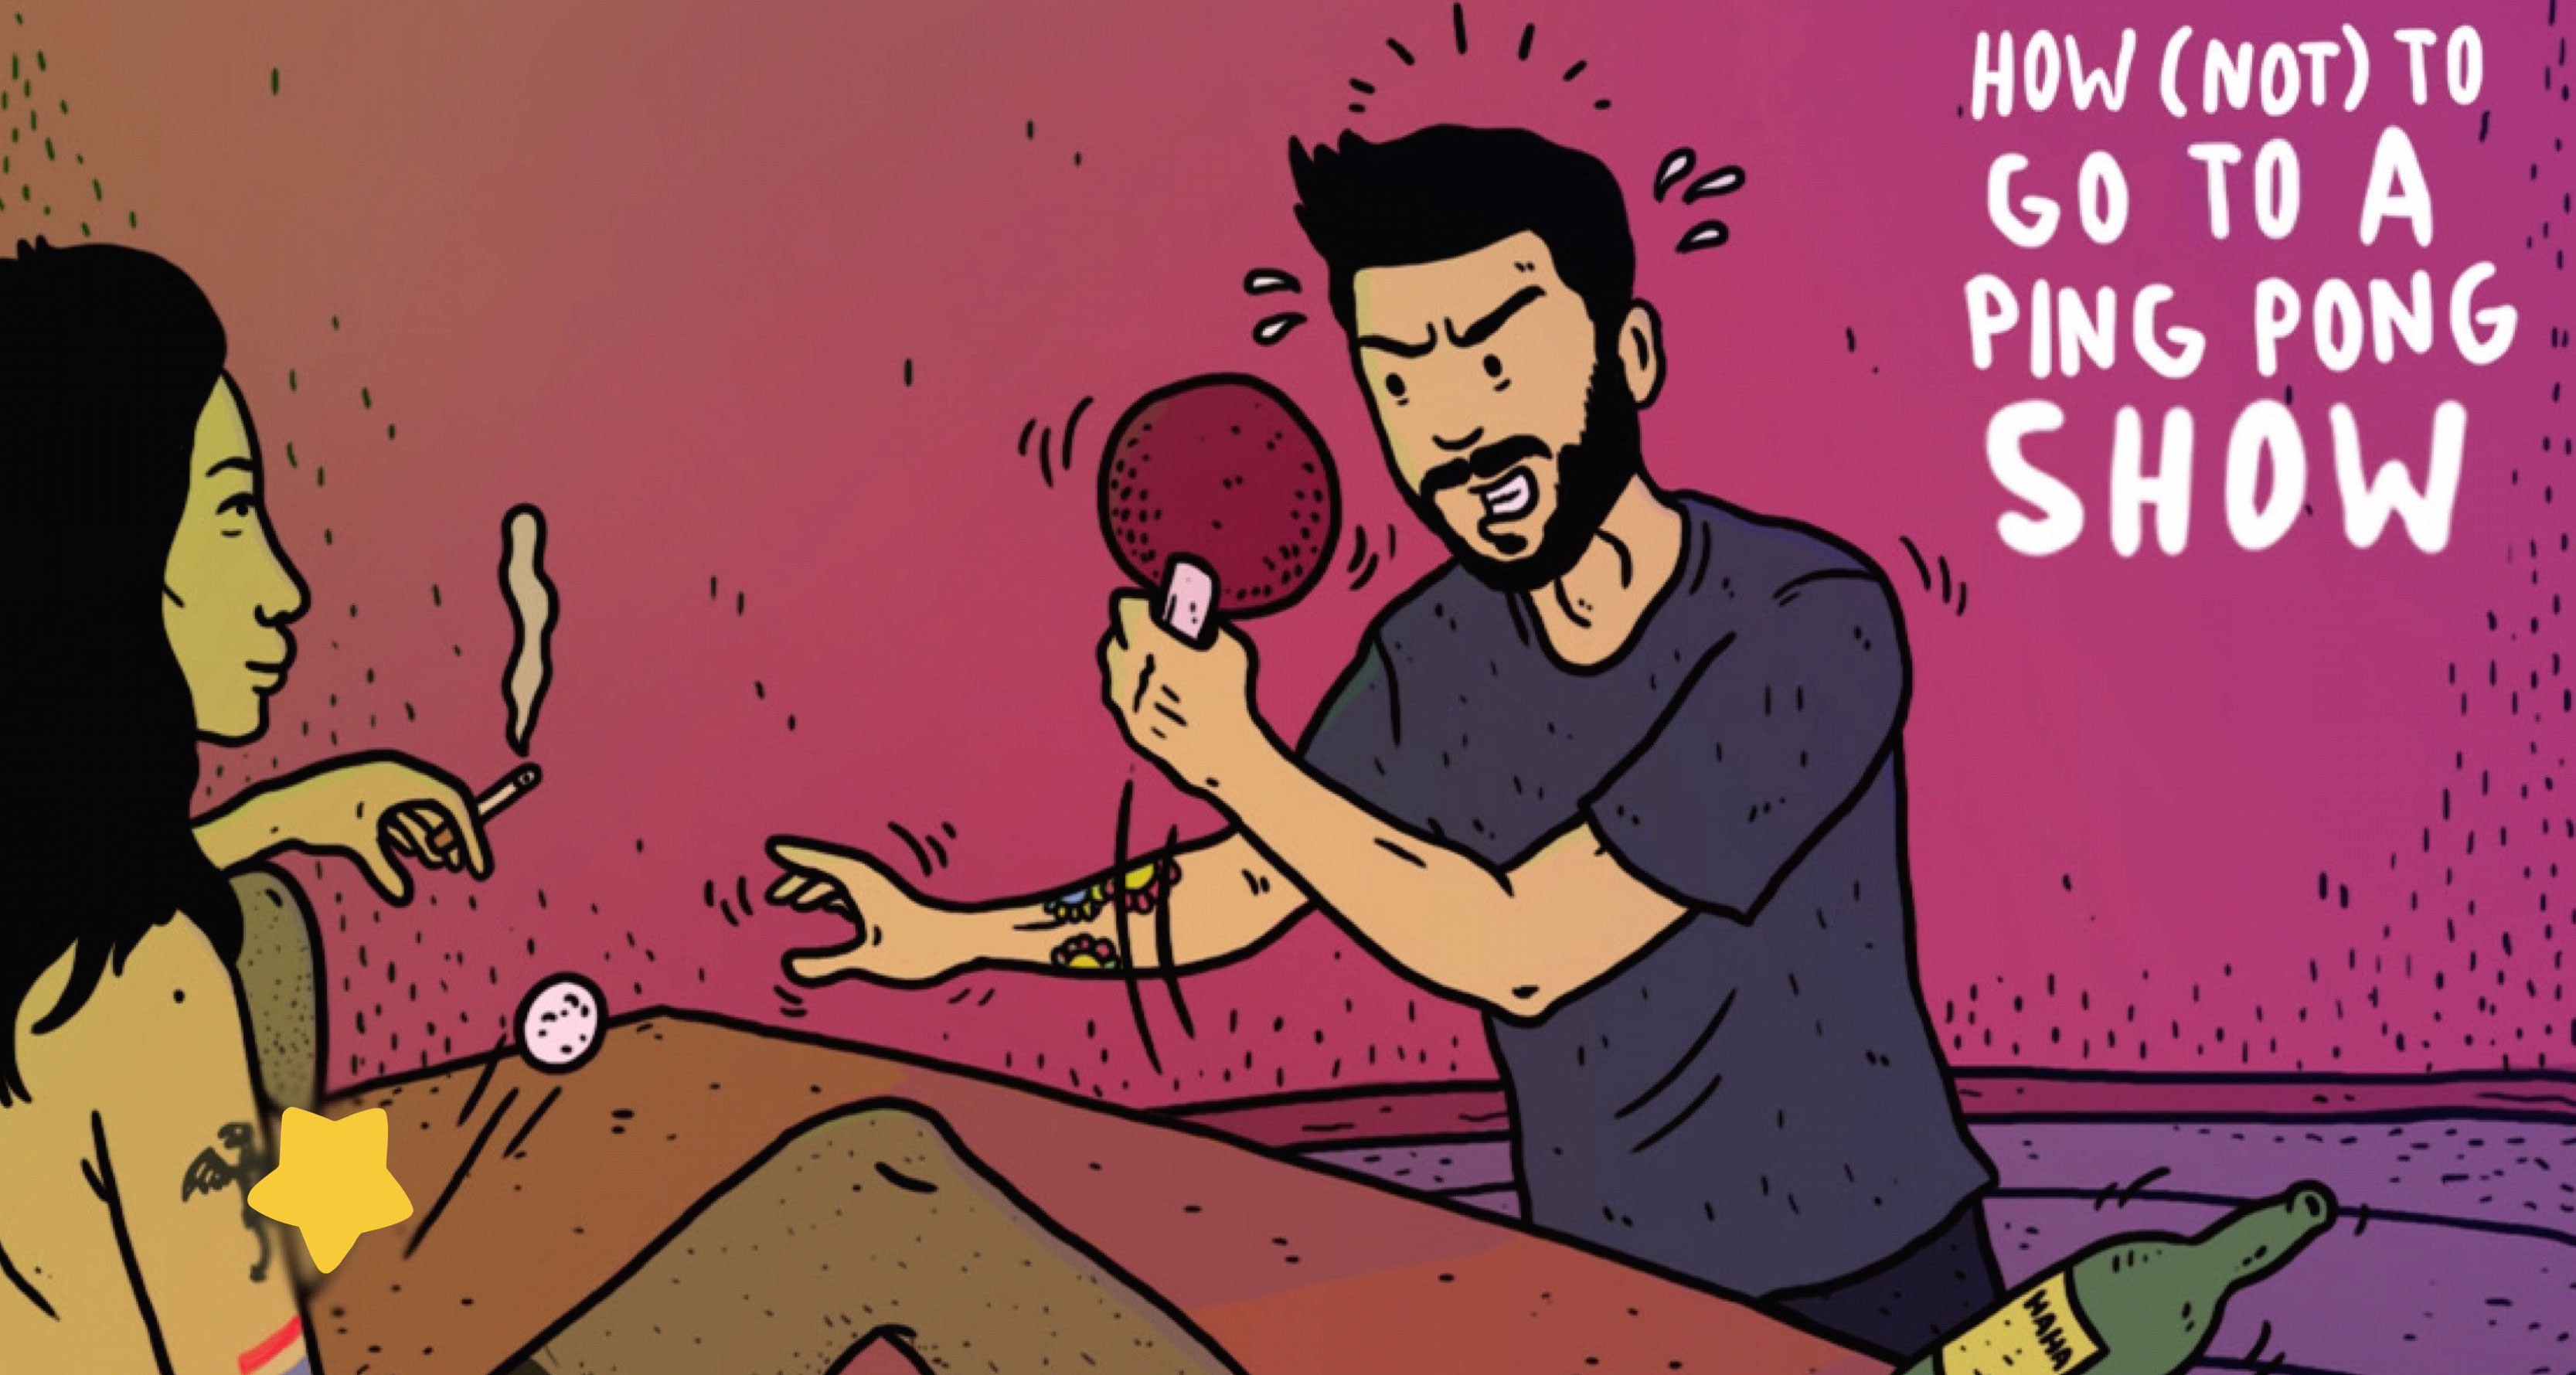 How (Not) To Go To A Ping Pong Show